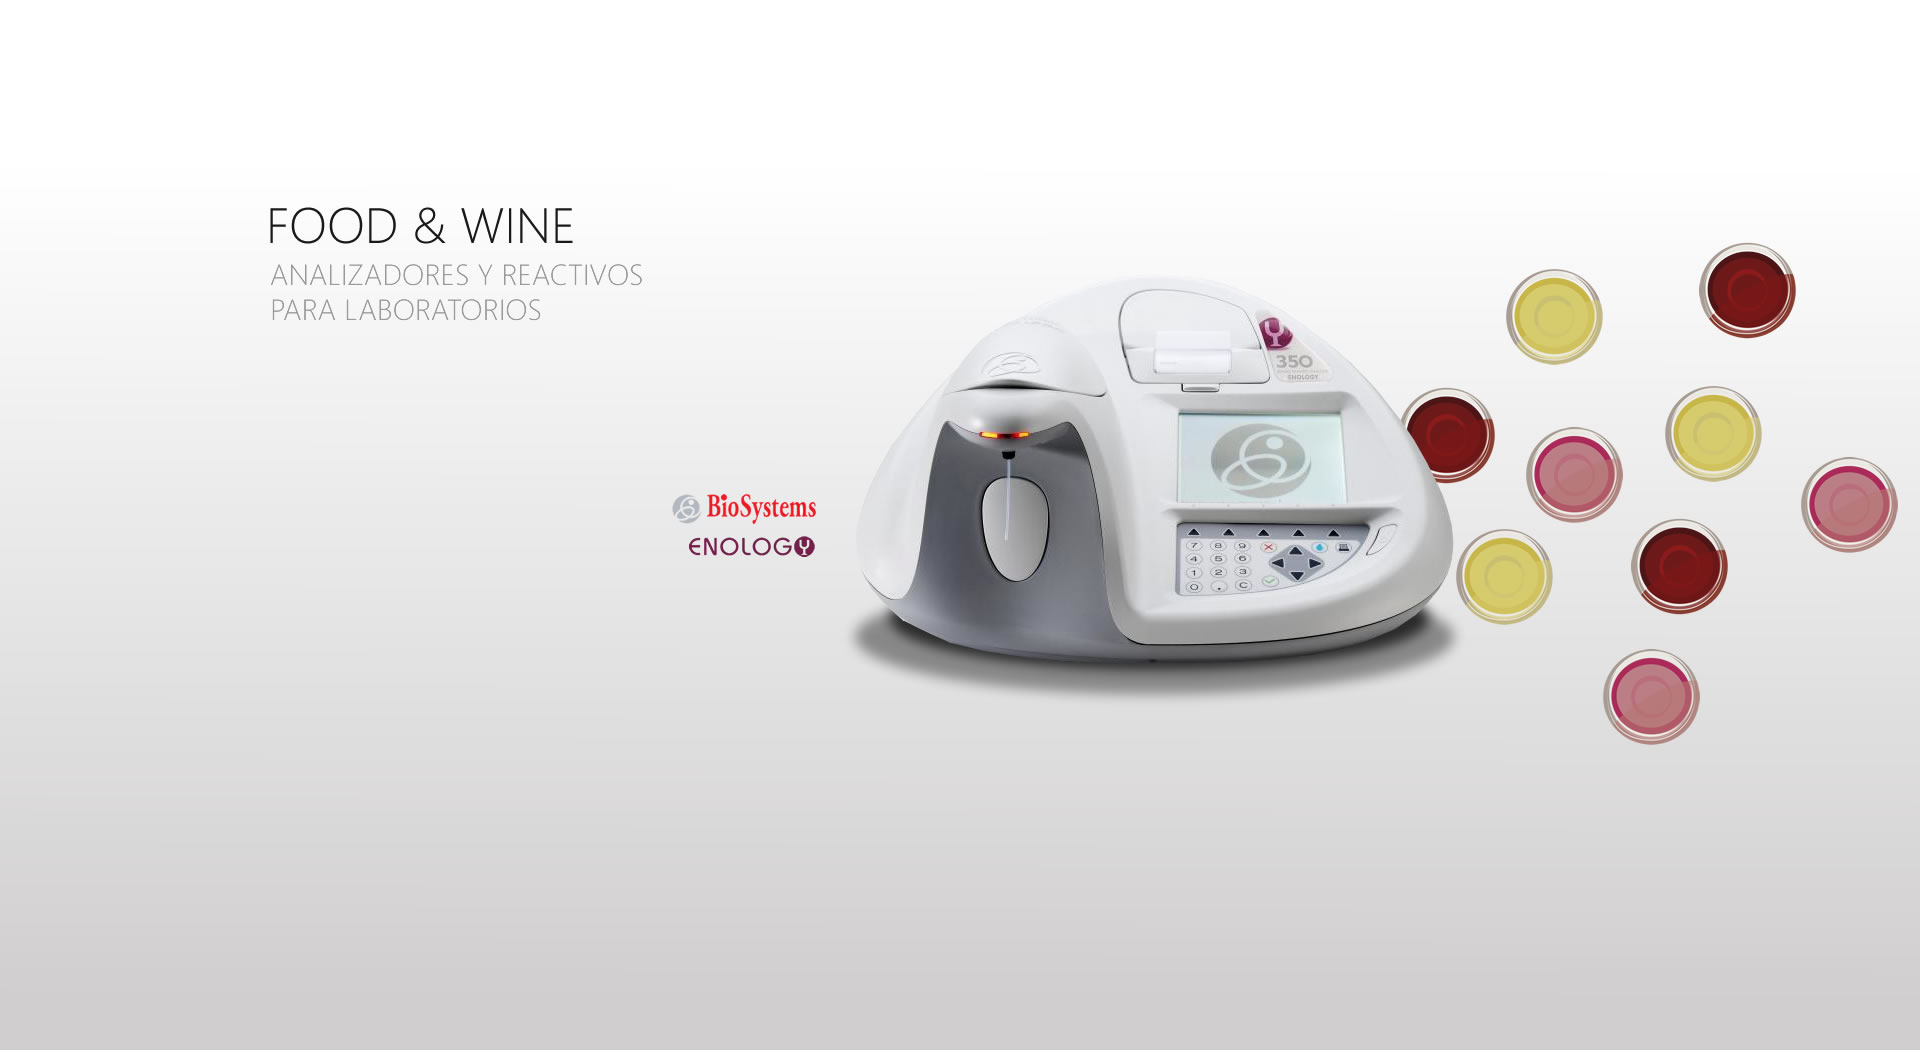 FOOW & WINE: Analizadores y reactivos para laboratorios